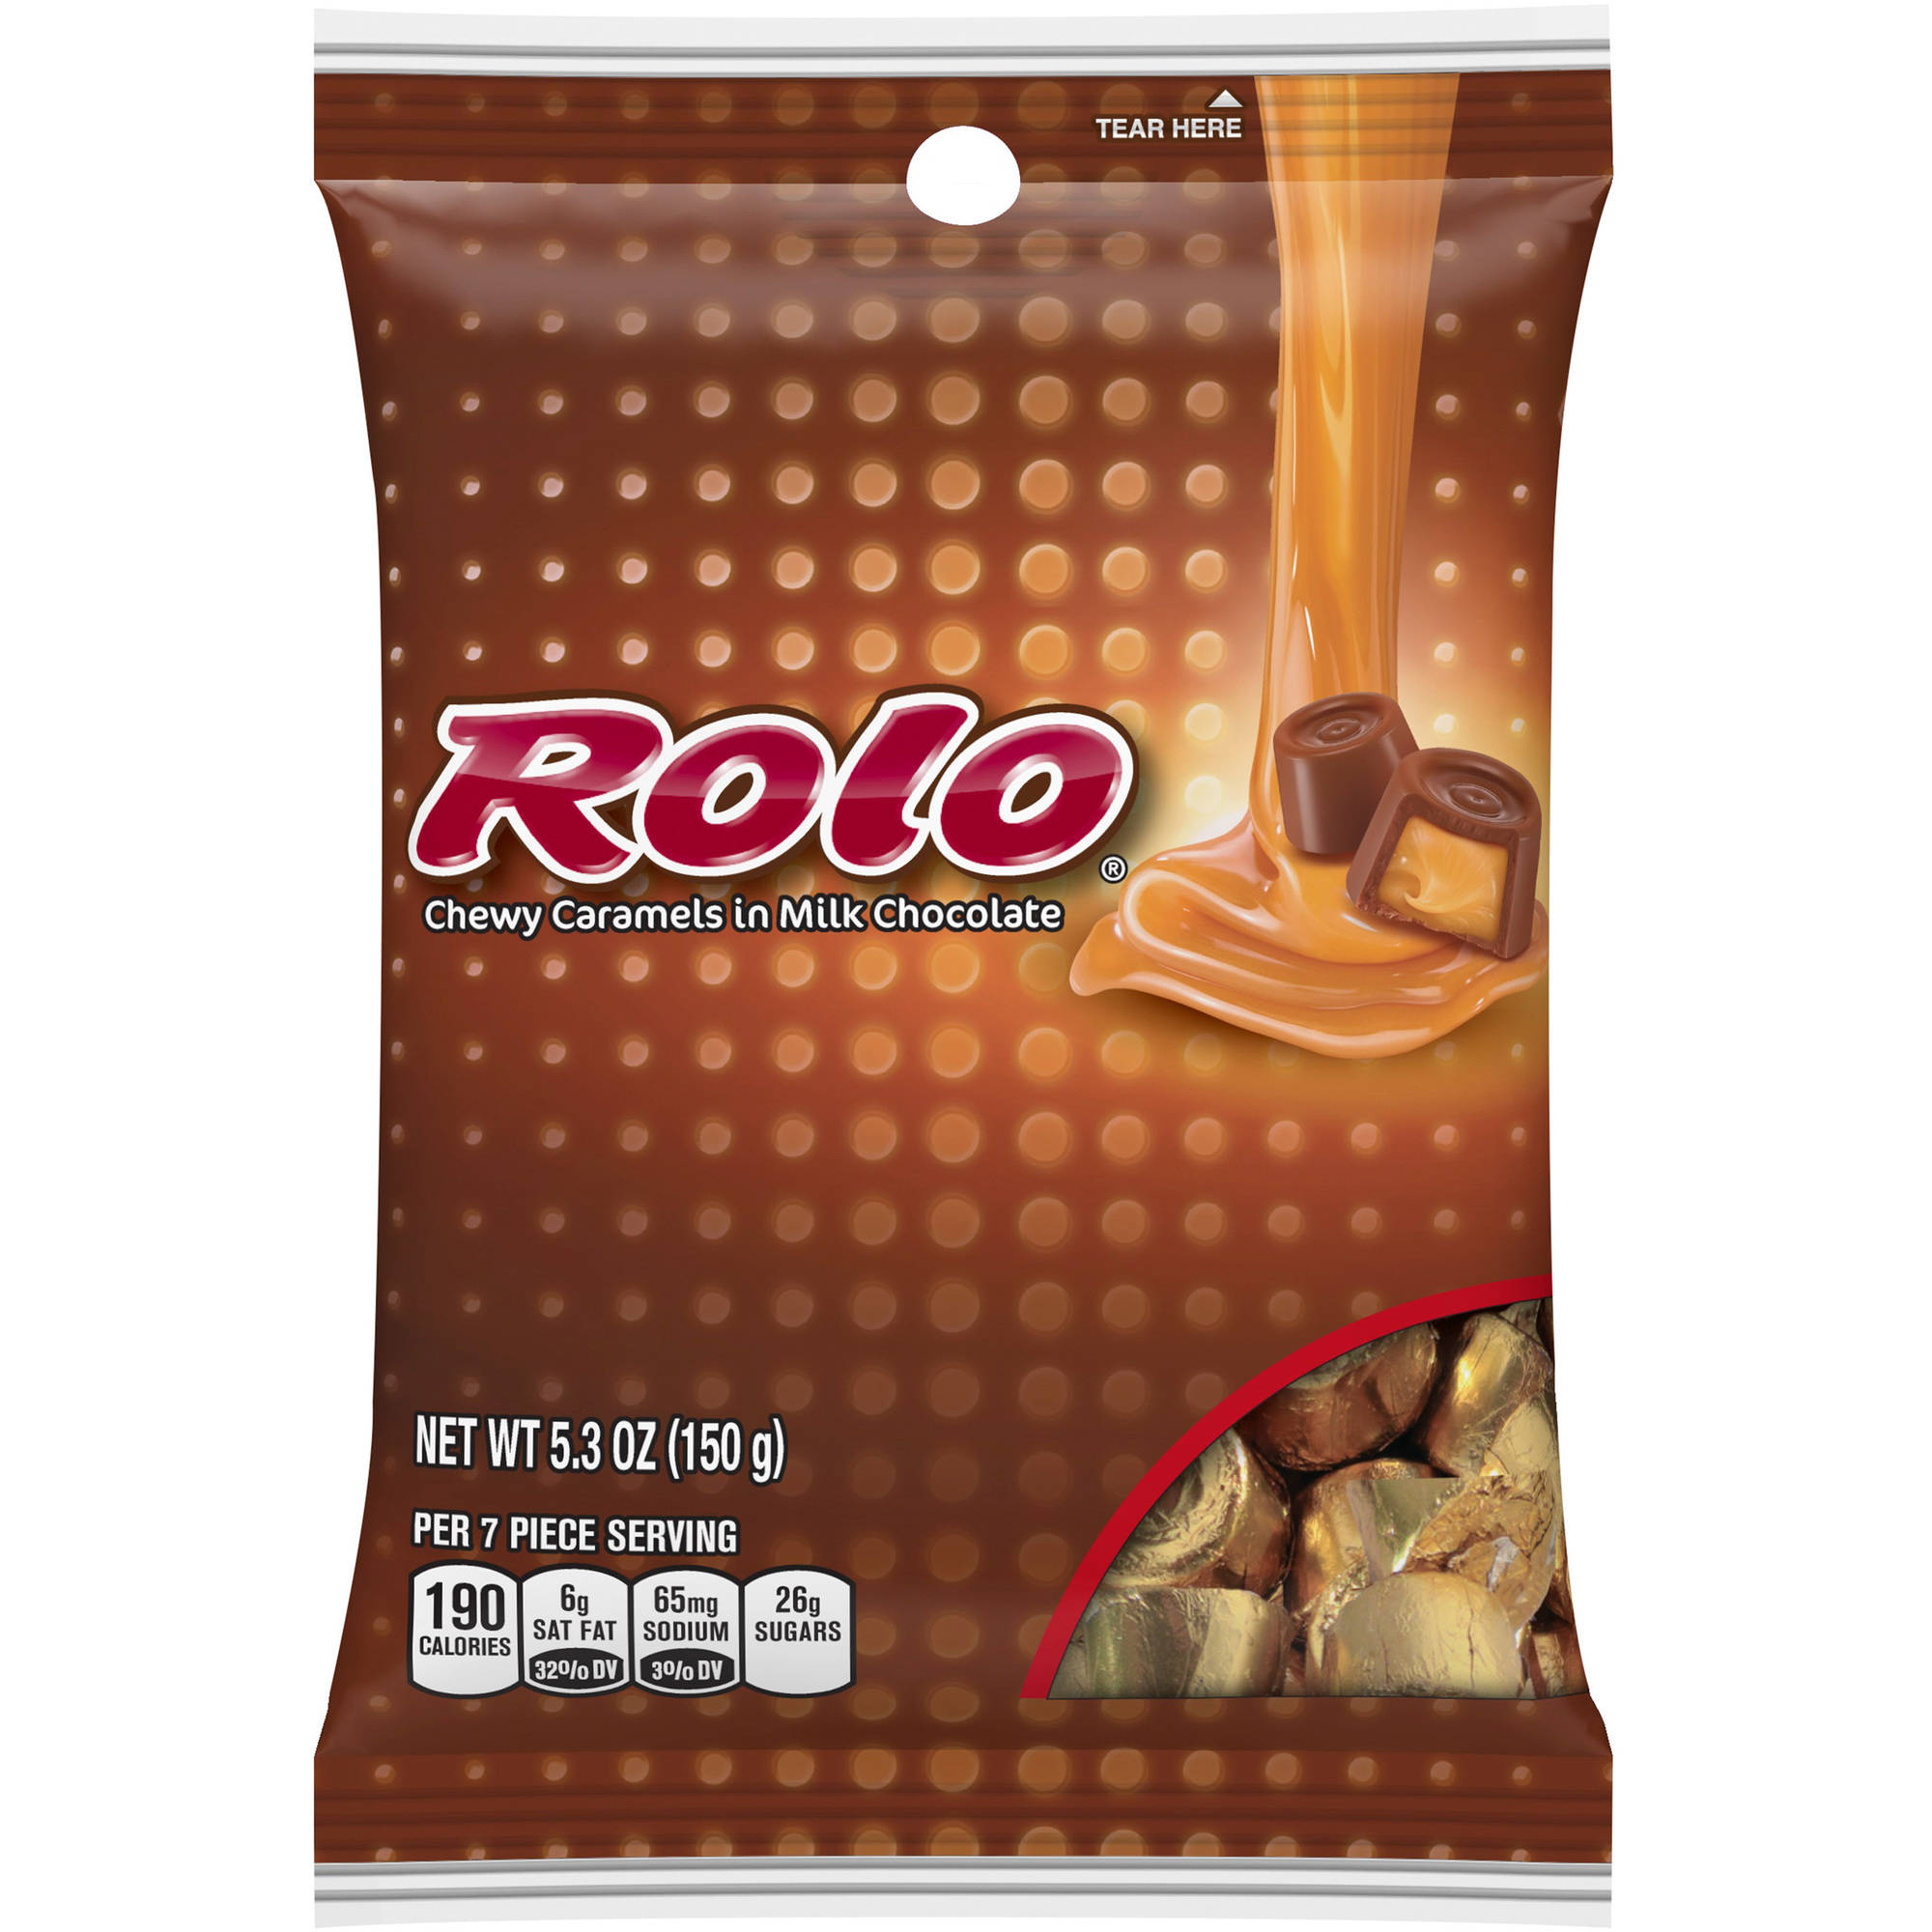 Rolo Chewy Caramels in Milk Chocolate, 5.3 oz